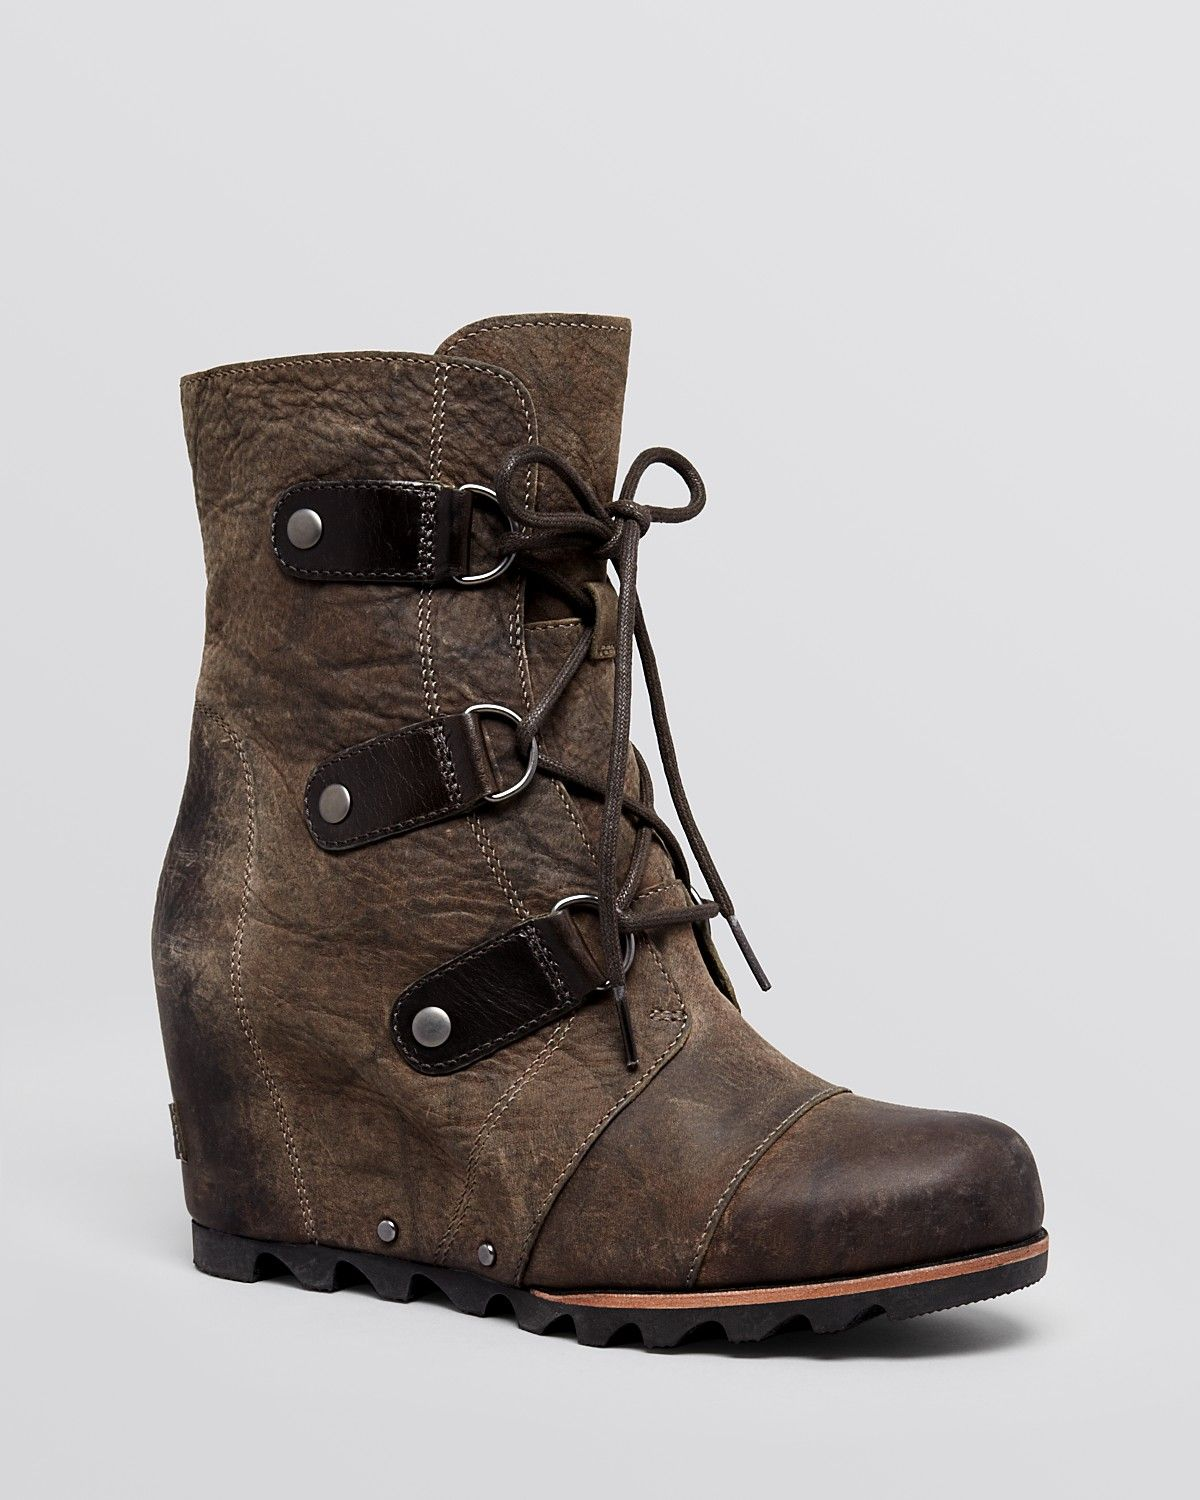 Sorel Waterproof Cold Weather Wedge Lace Up Boots - Joan of Arctic |  Bloomingdale's